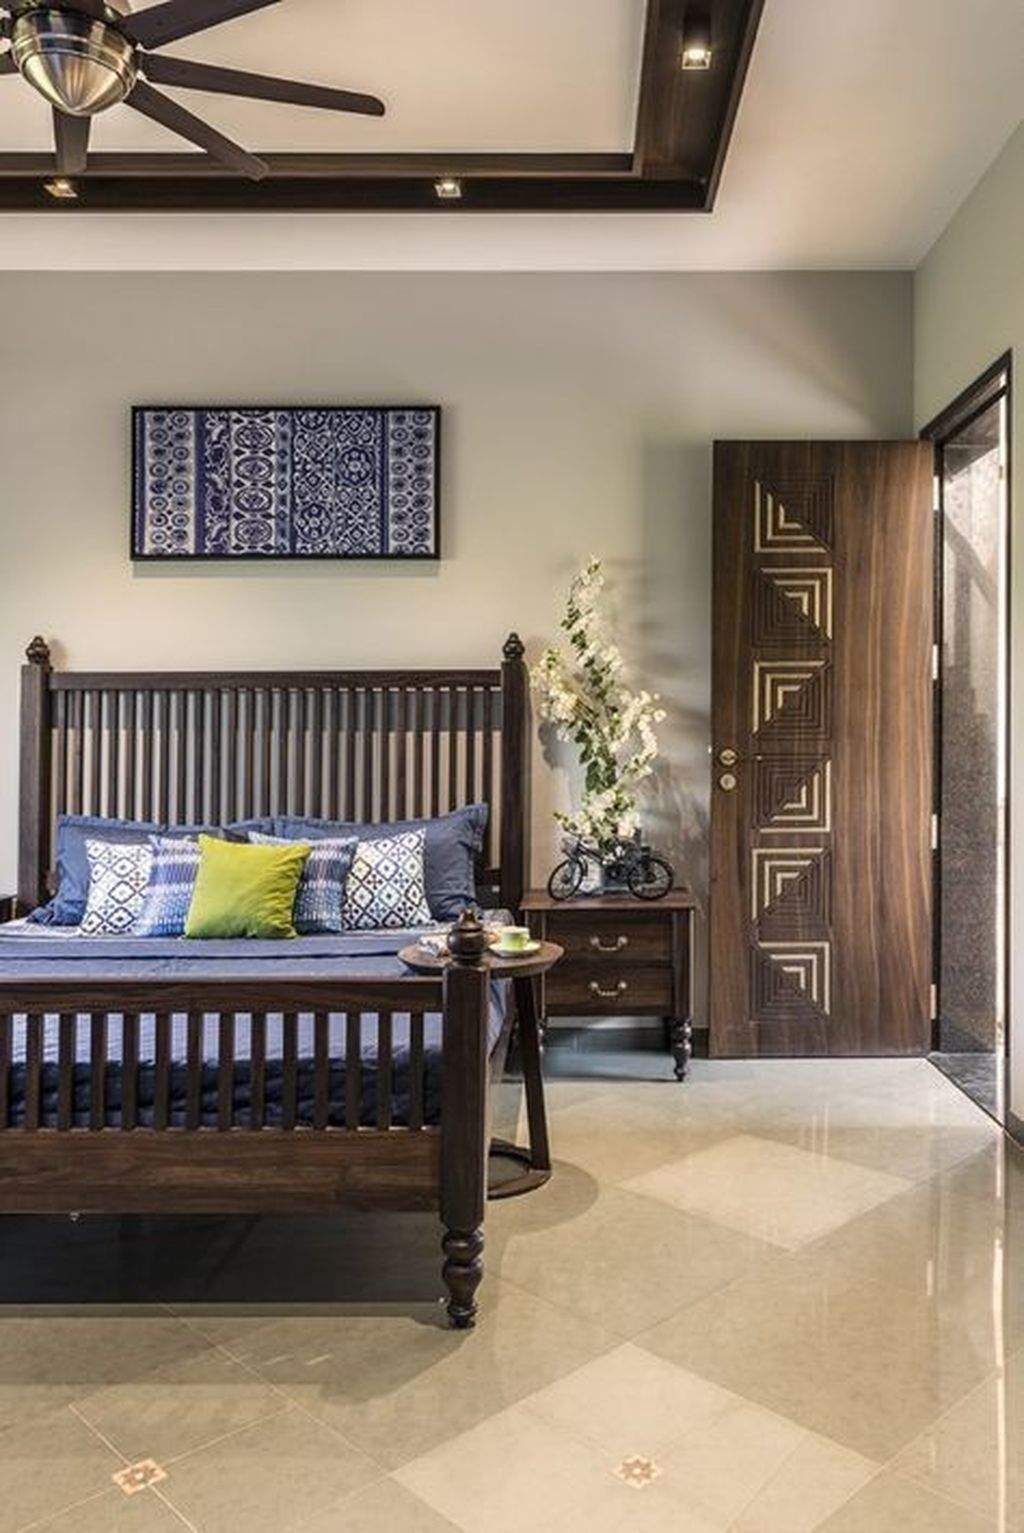 34 Beautiful Indian Home Decor Ideas in 2020 | Bedroom ...